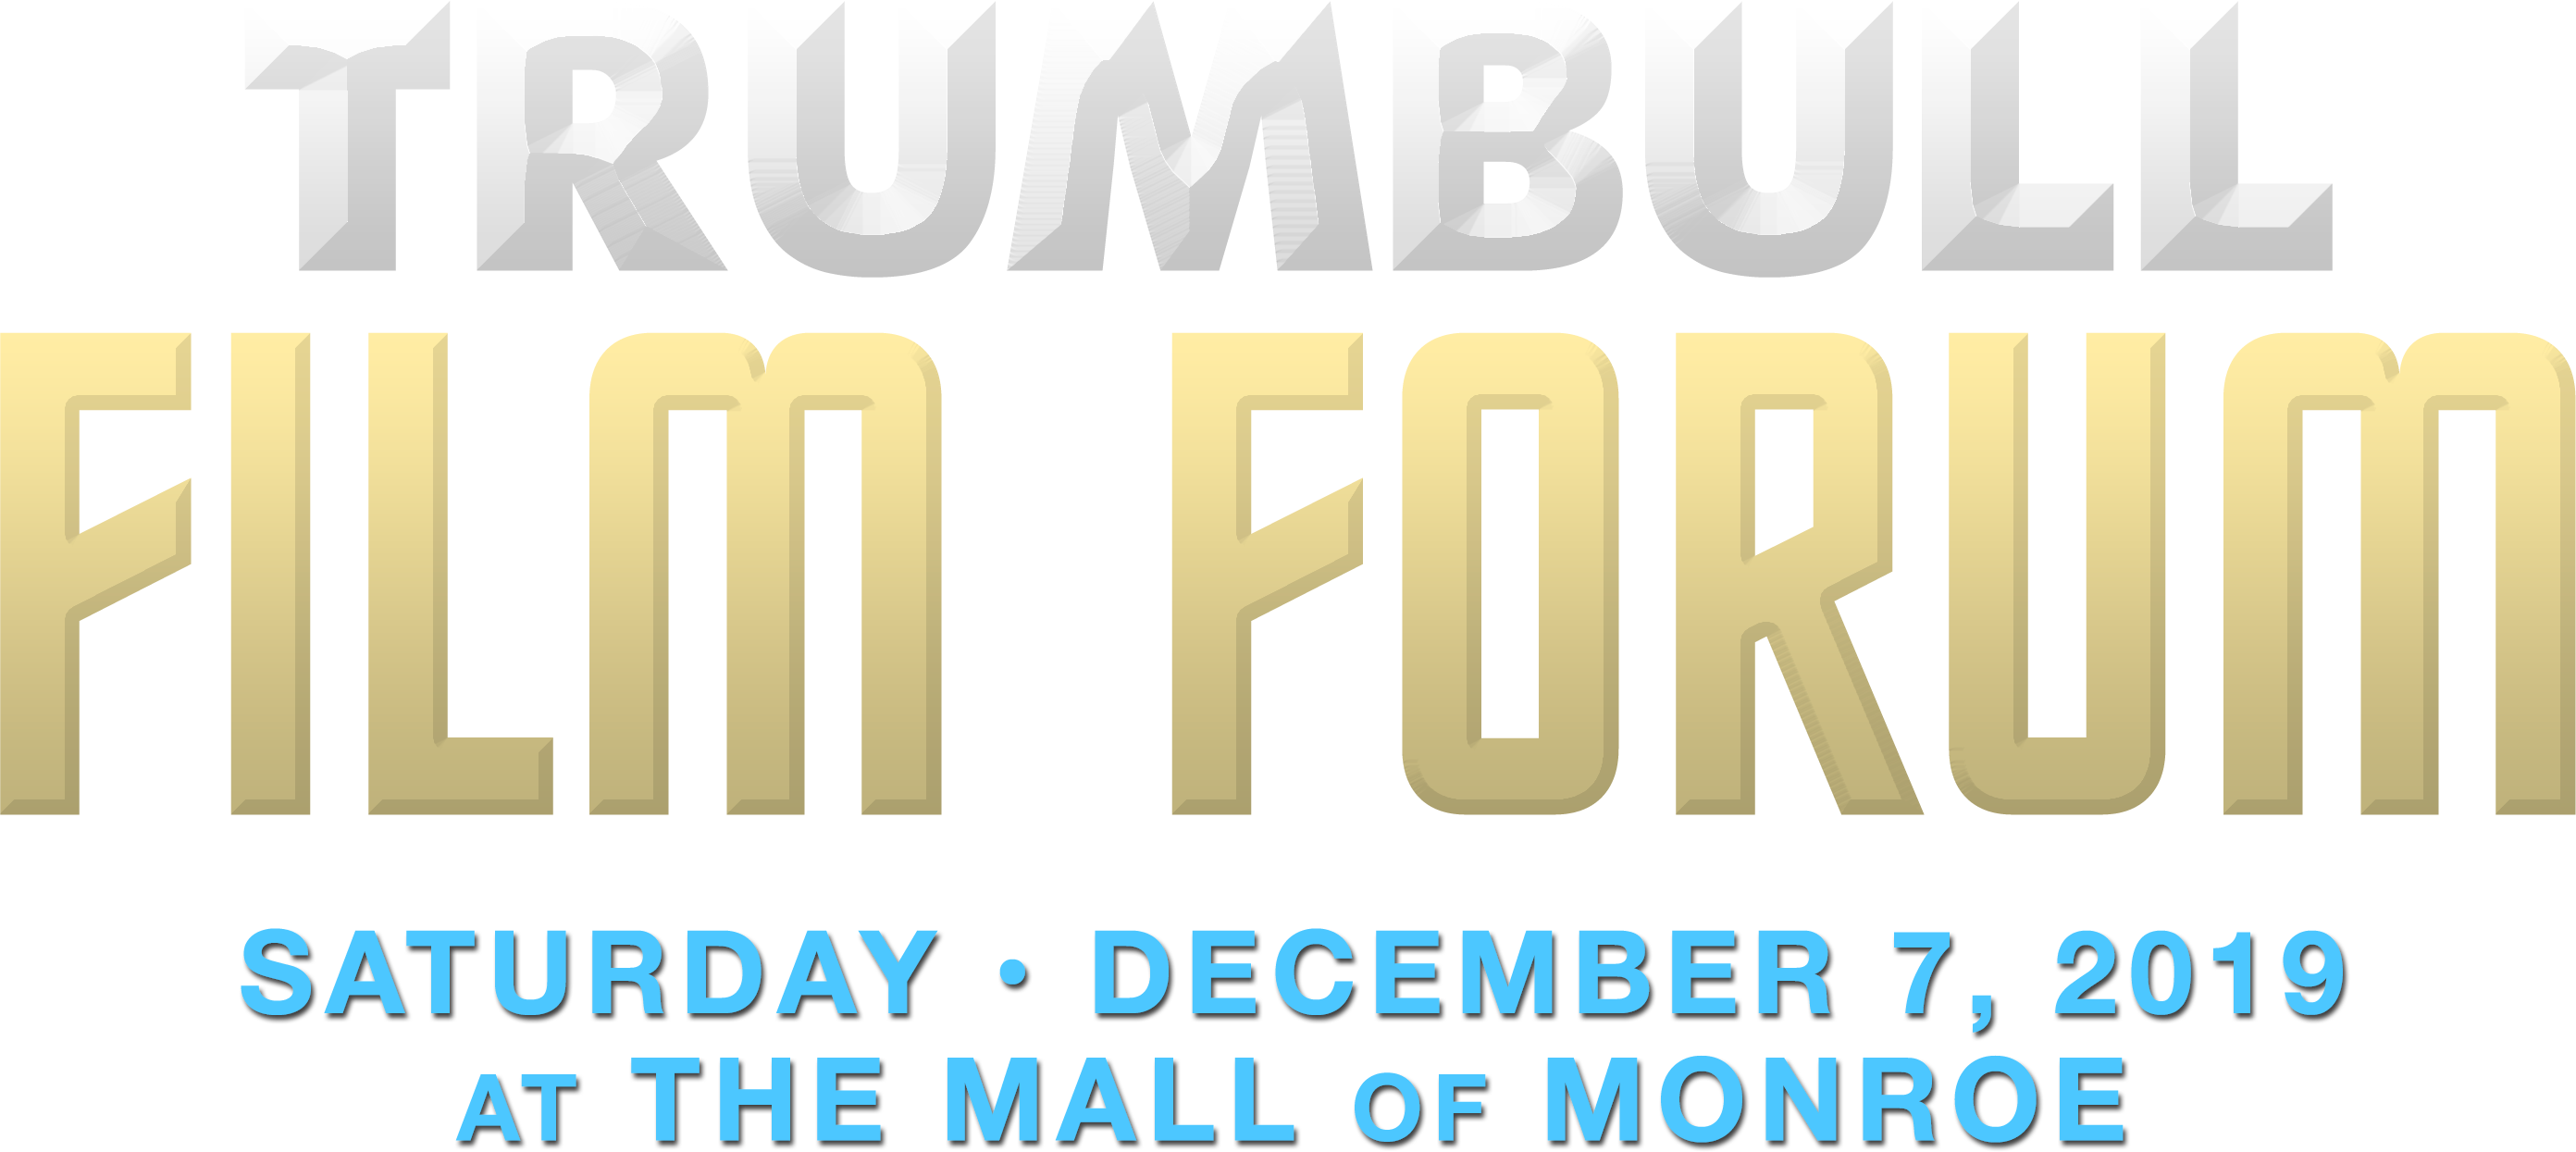 The Trumbull Film Forum Saturday, December 7, 2019 at Phoenix Theatres The Mall of Monroe